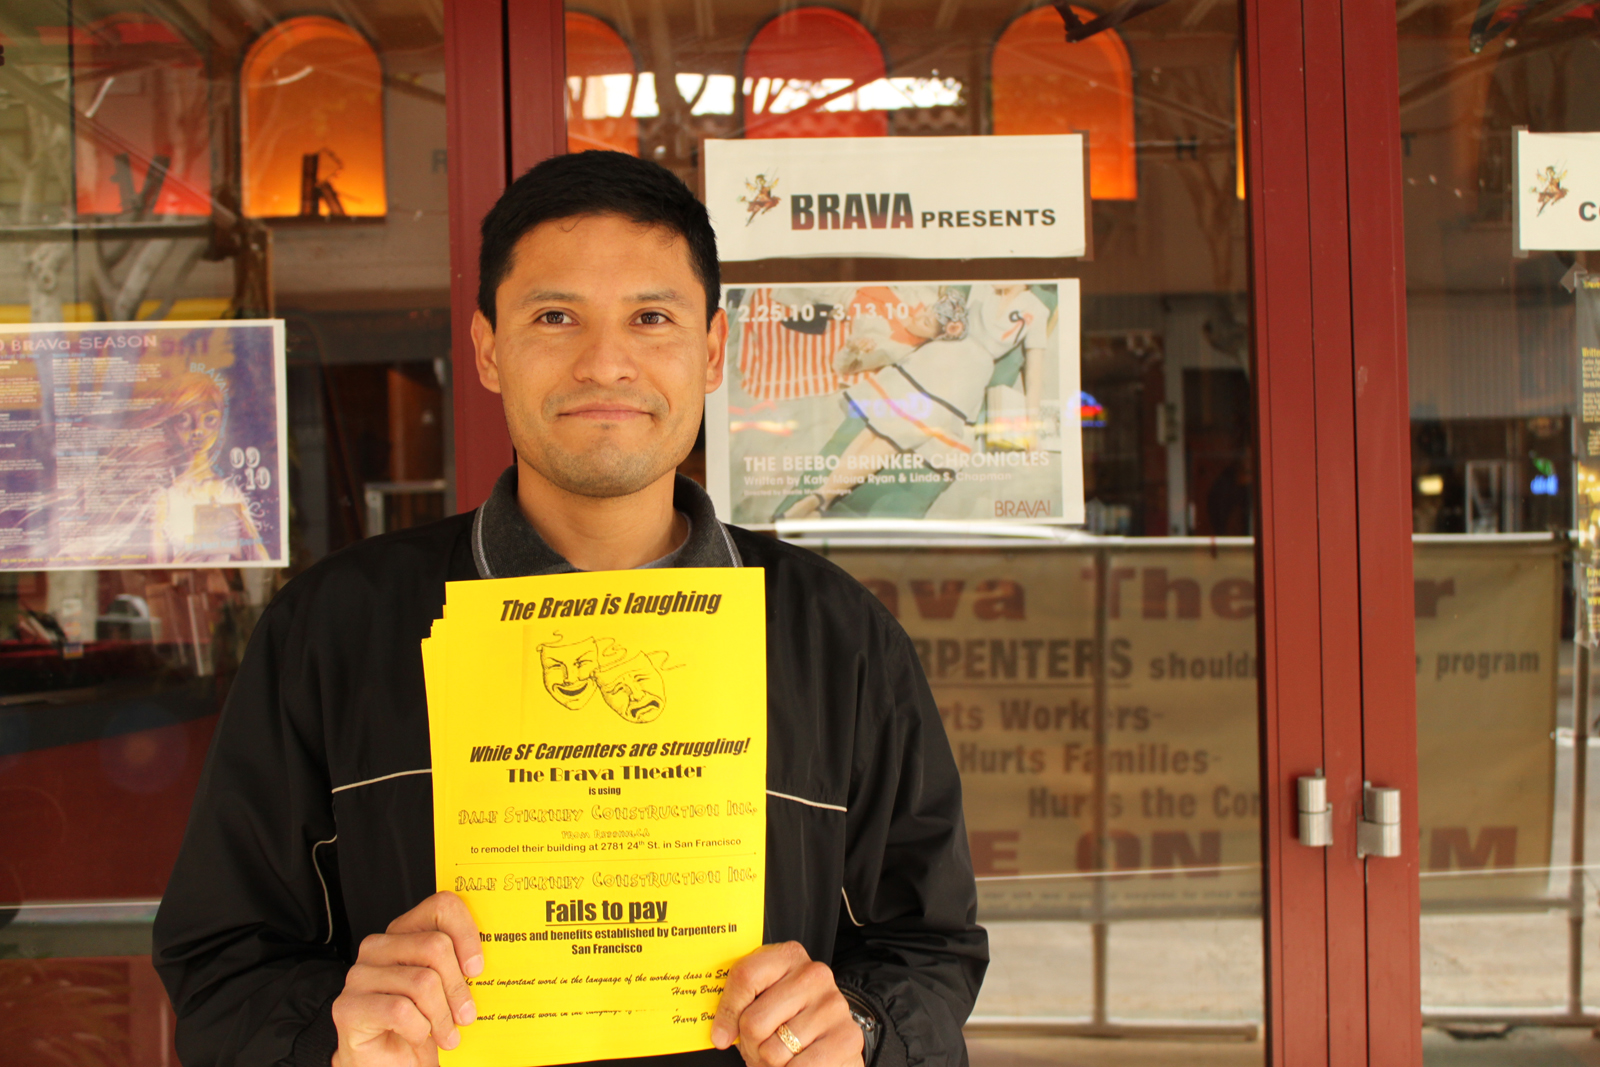 An unemployed carpenter hands out flyers in front of Brava.